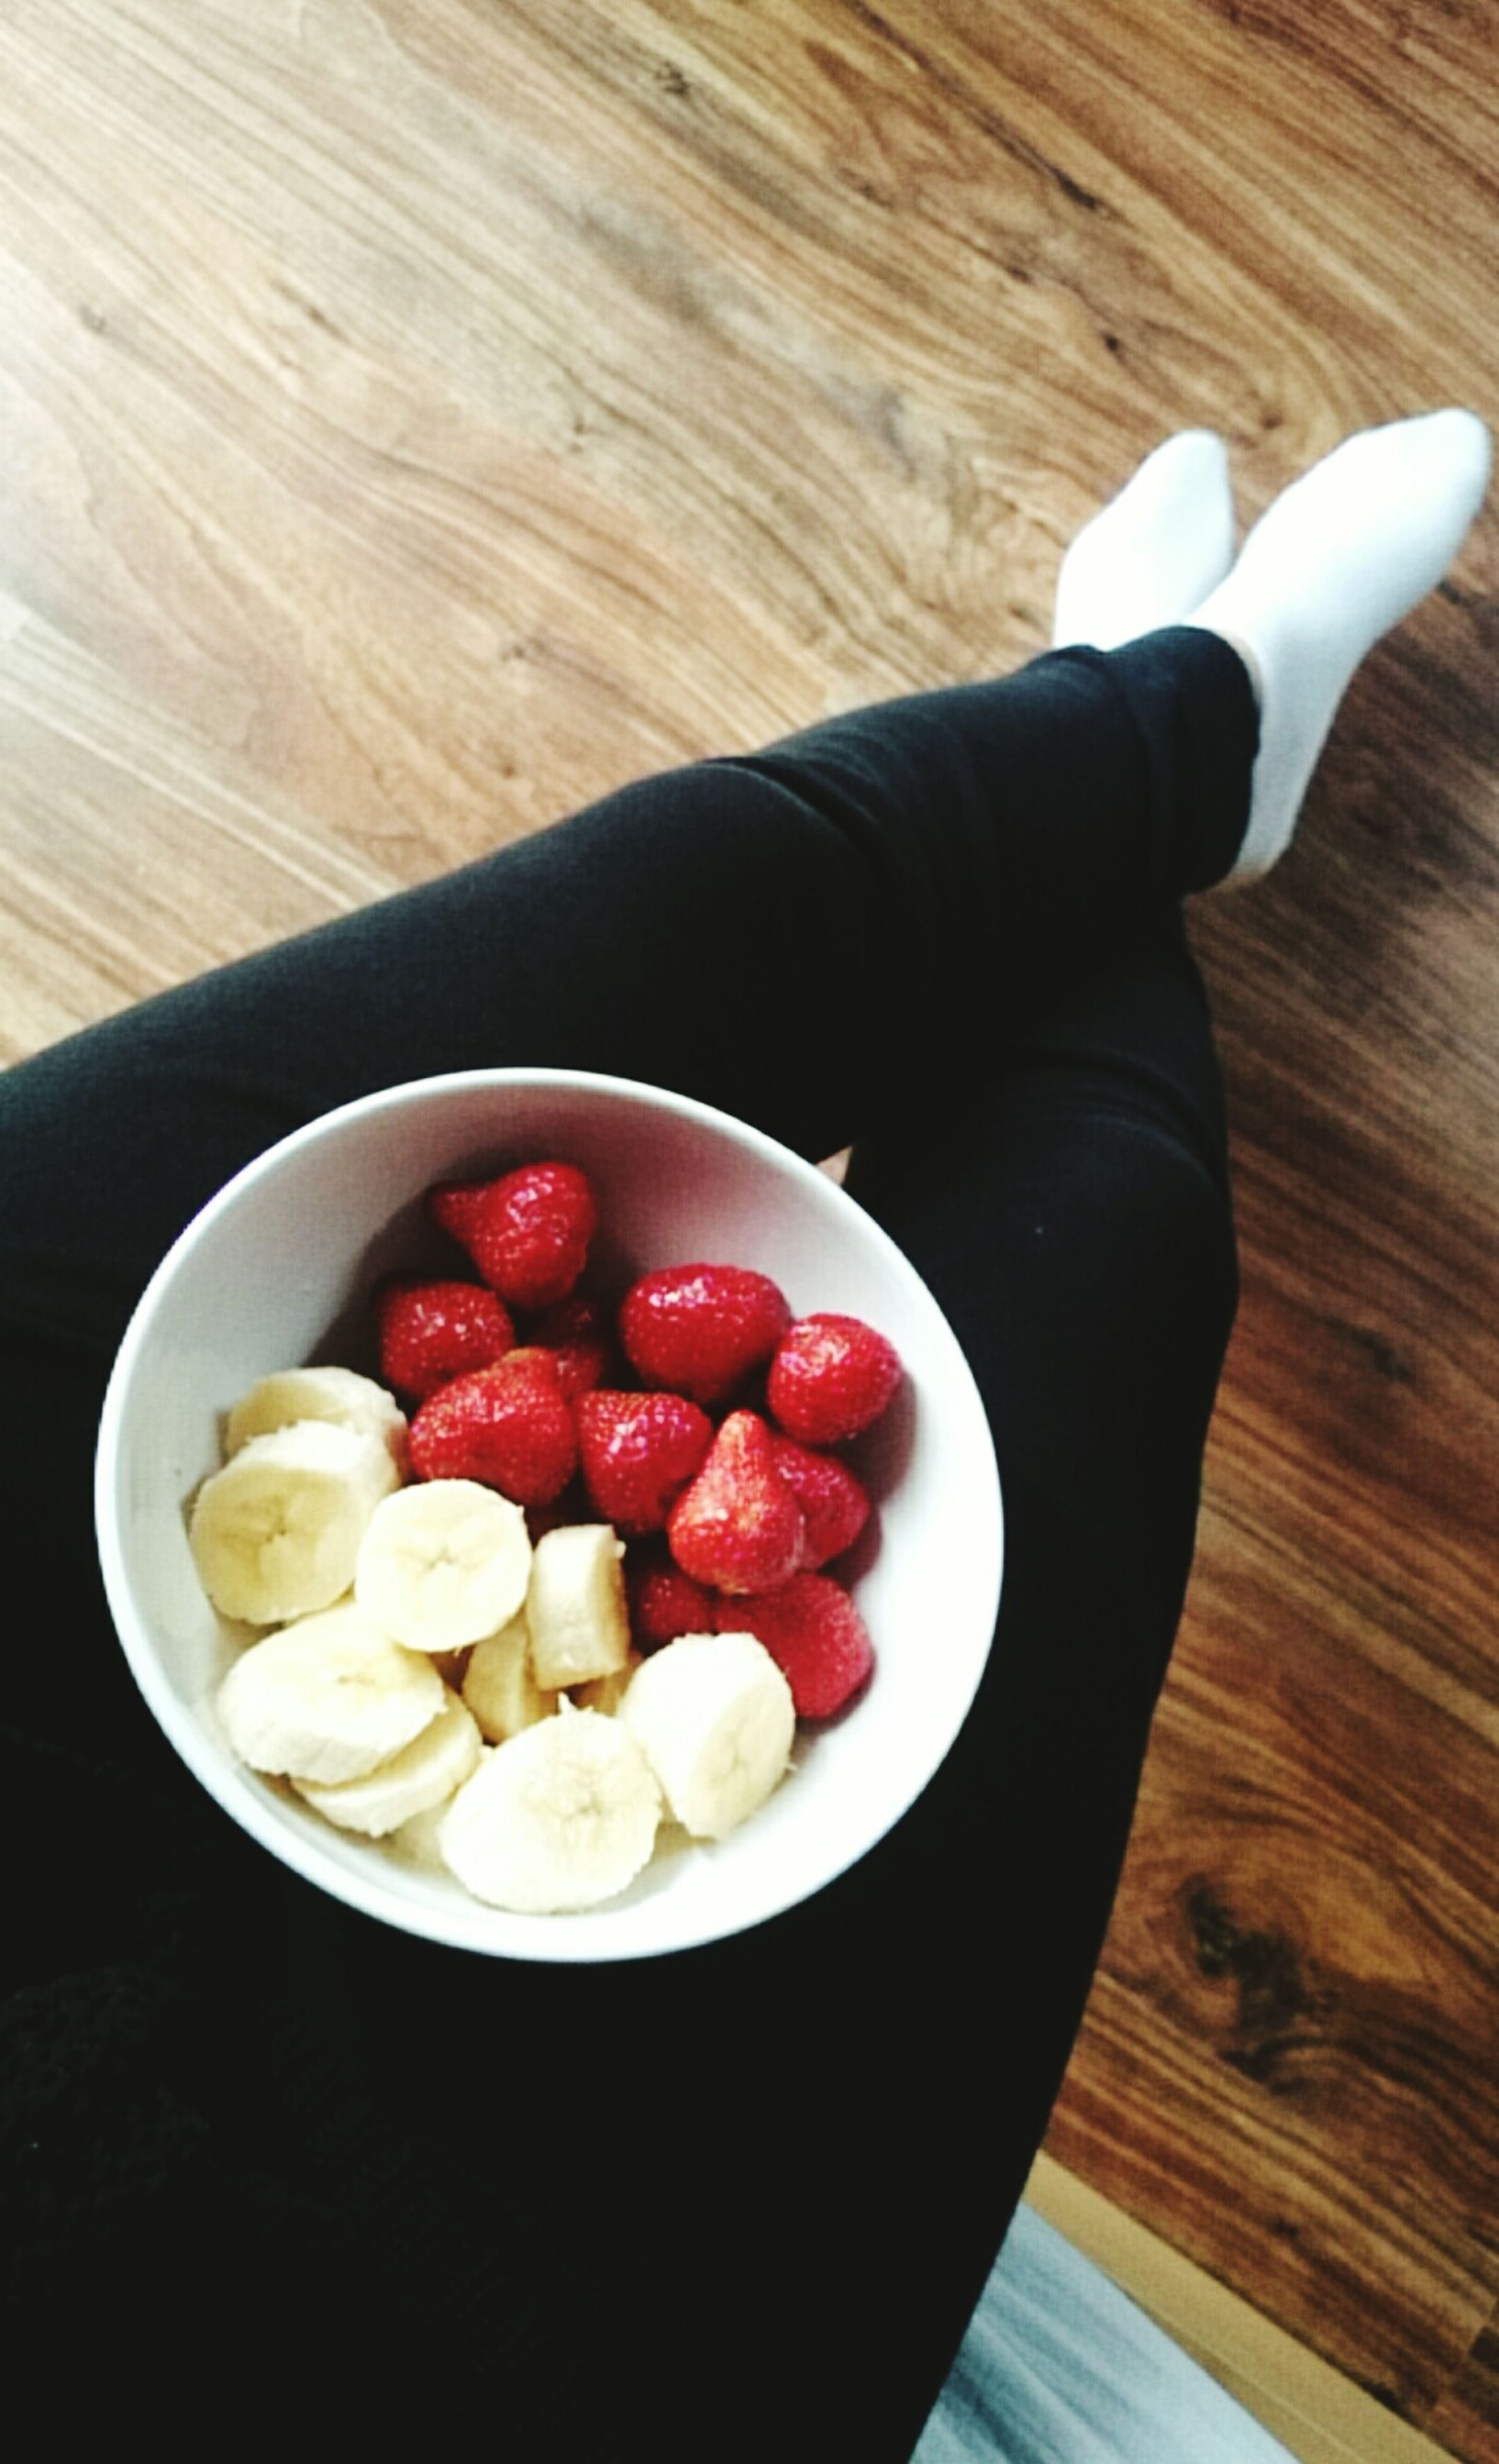 food and drink, food, freshness, indoors, fruit, healthy eating, red, table, high angle view, person, sweet food, strawberry, holding, still life, bowl, directly above, indulgence